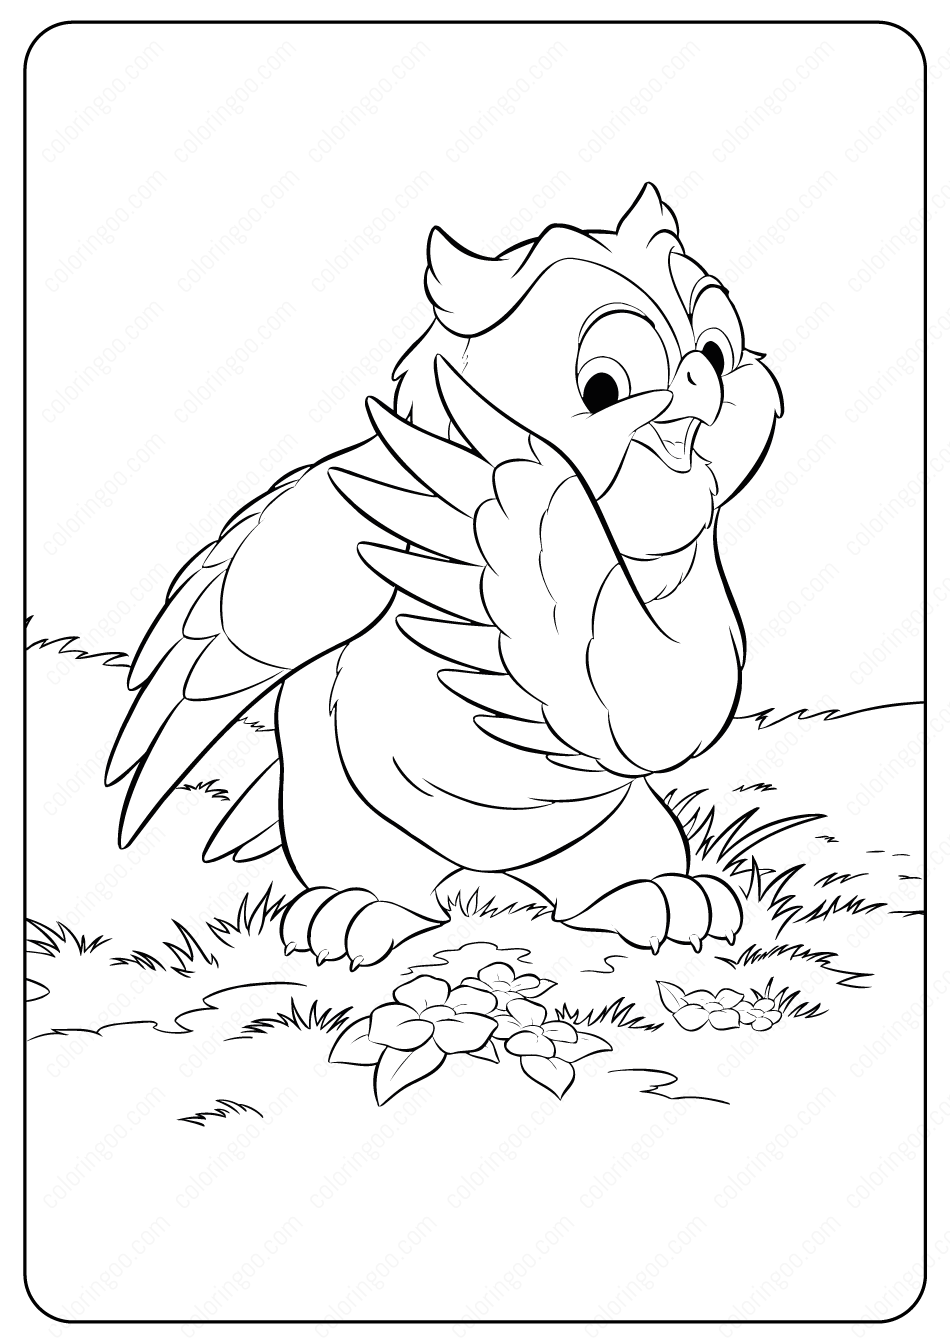 coloring pages disney animals baby animal coloring pages best coloring pages for kids animals pages coloring disney